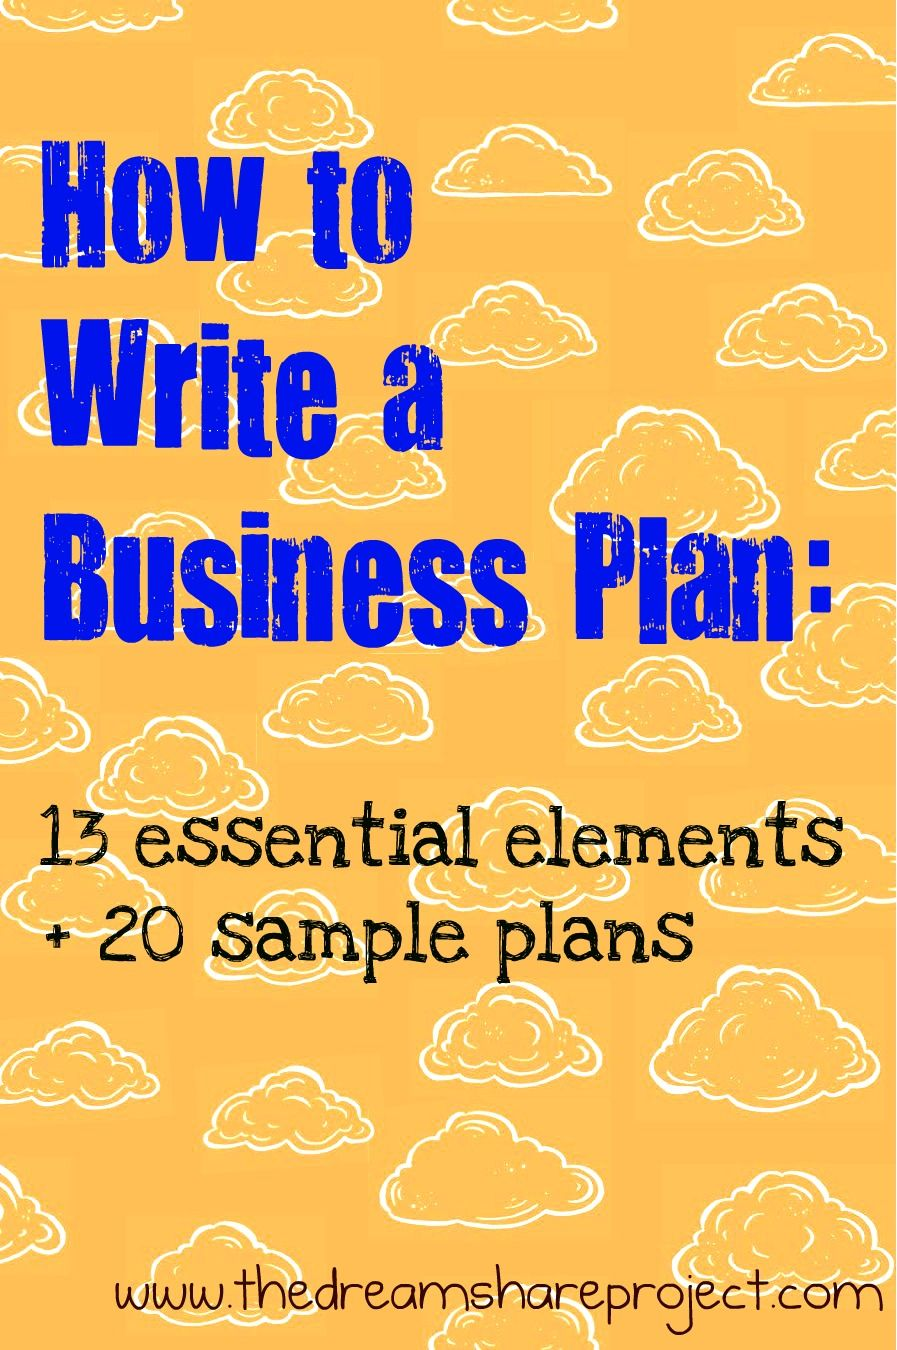 Use of business plan